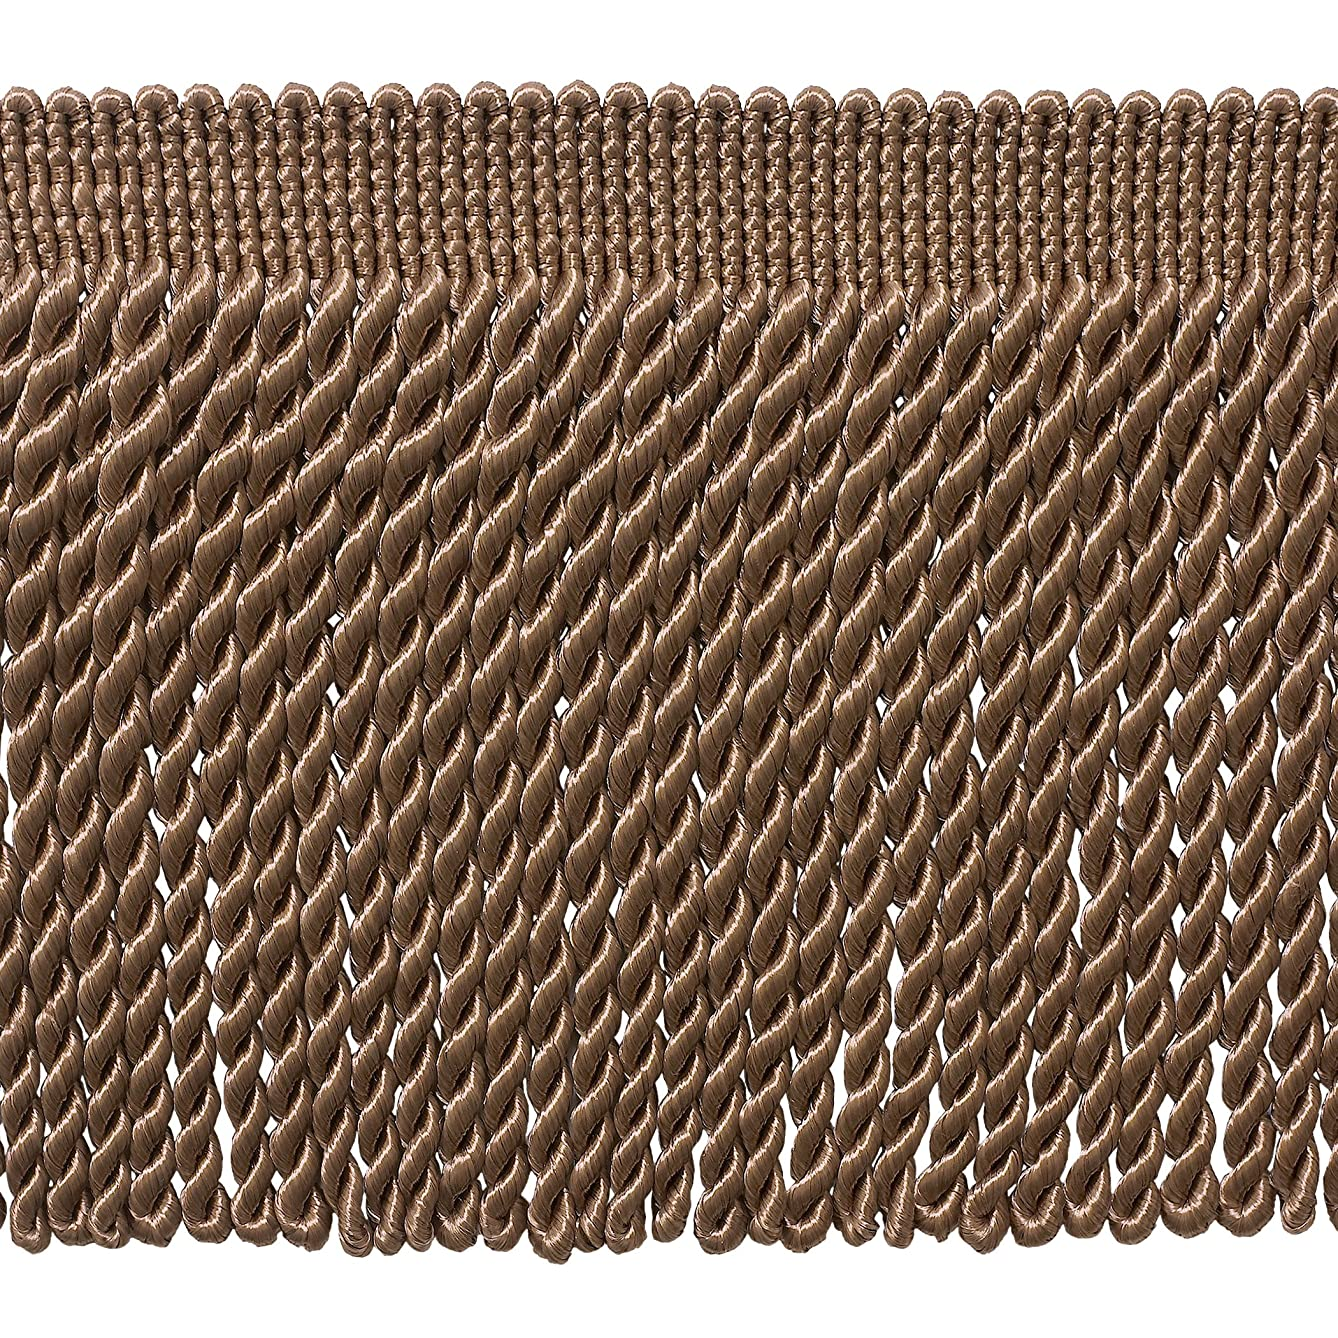 DecoPro 5 Yard Value Pack - 6 Inch Long DARK SAND Bullion Fringe Trim, Style# BFS6 Color: A8 (15 Ft / 4.5 Meters)